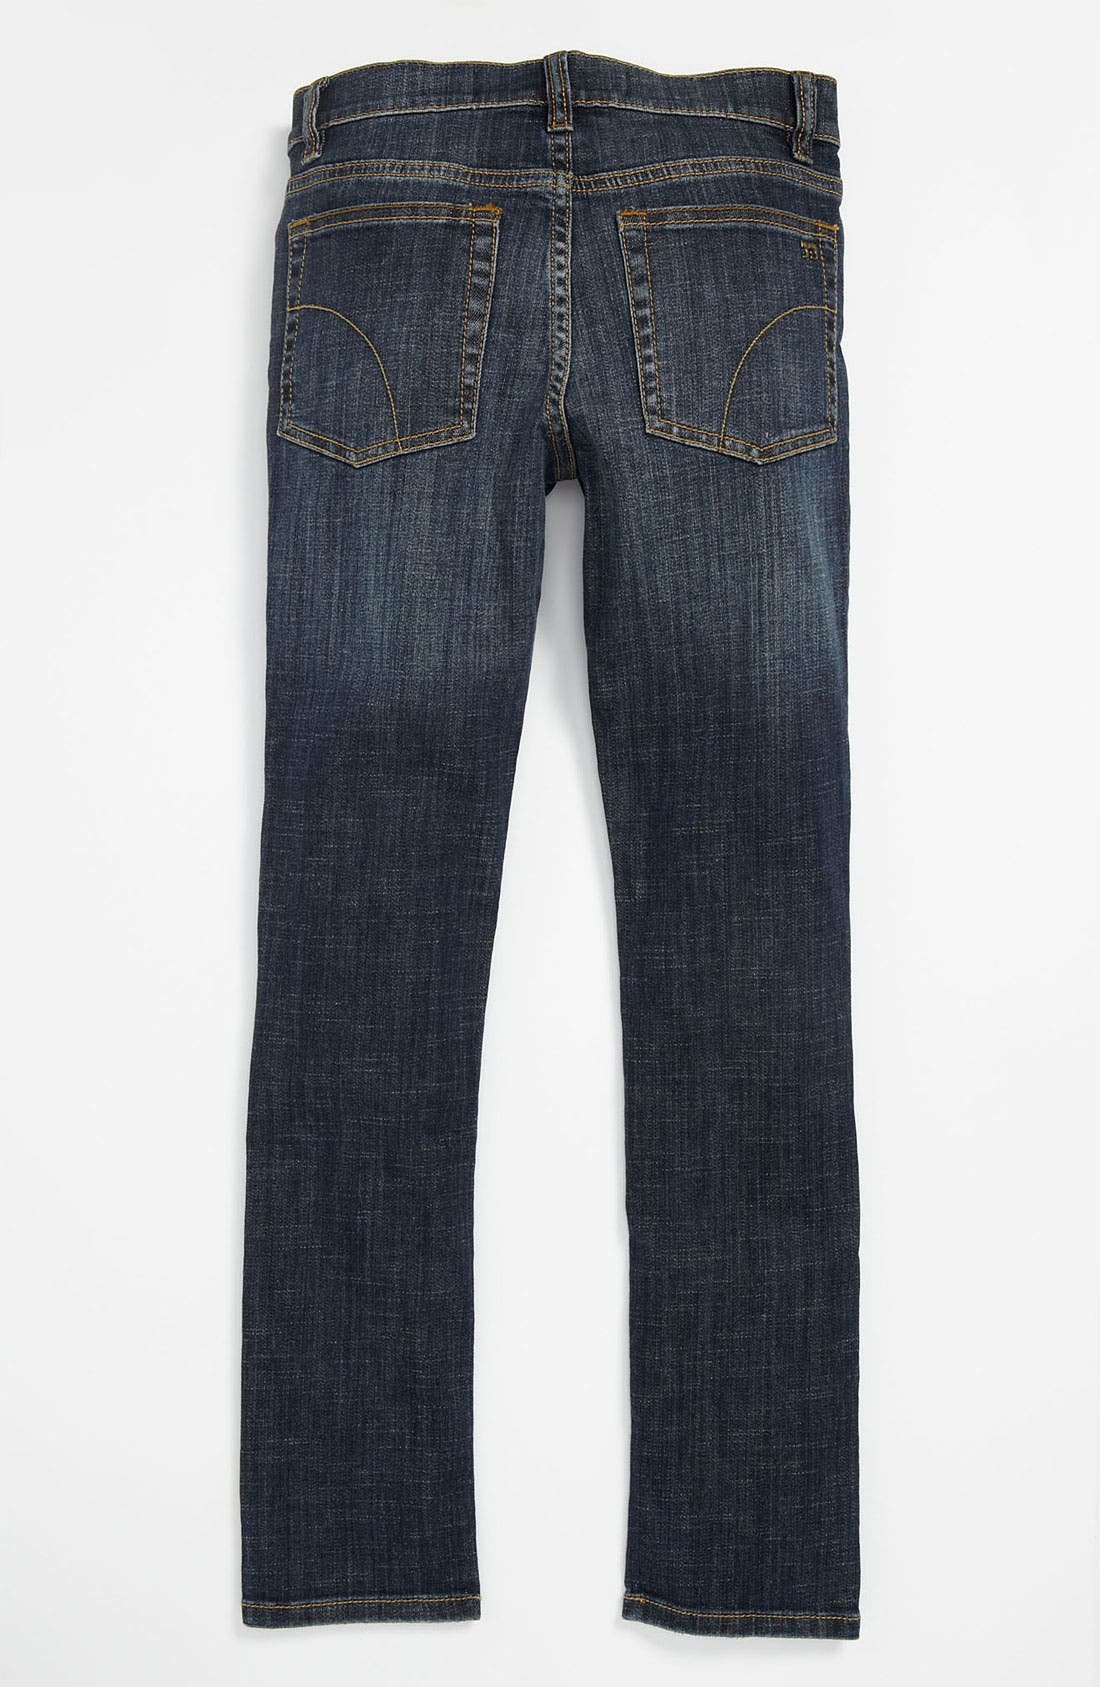 Alternate Image 1 Selected - Joe's 'Rad' Skinny Leg Jeans (Little Boys)